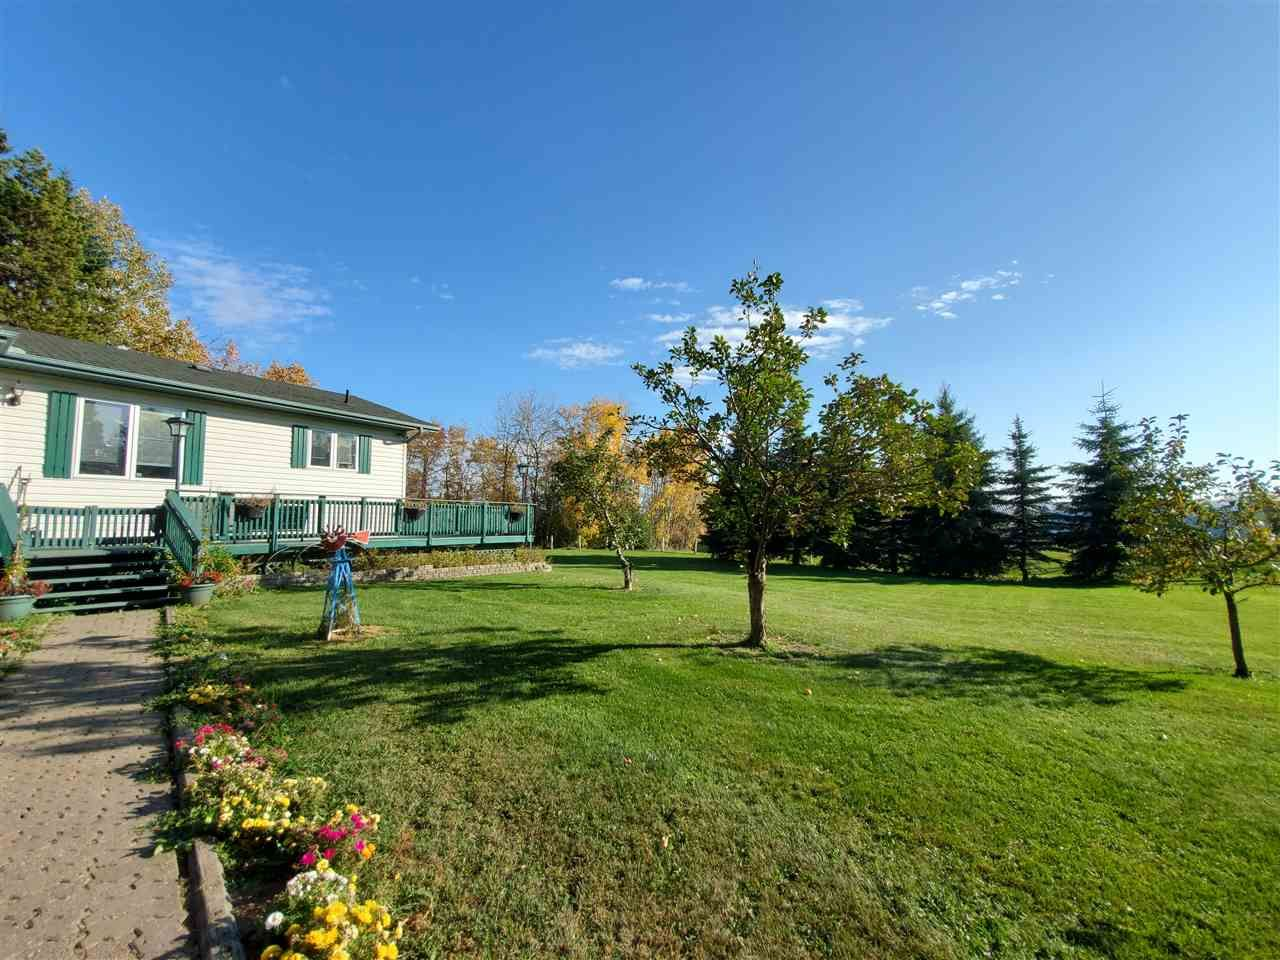 Photo 31: Photos: 265073 Twp Rd 472A: Rural Wetaskiwin County House for sale : MLS®# E4216435